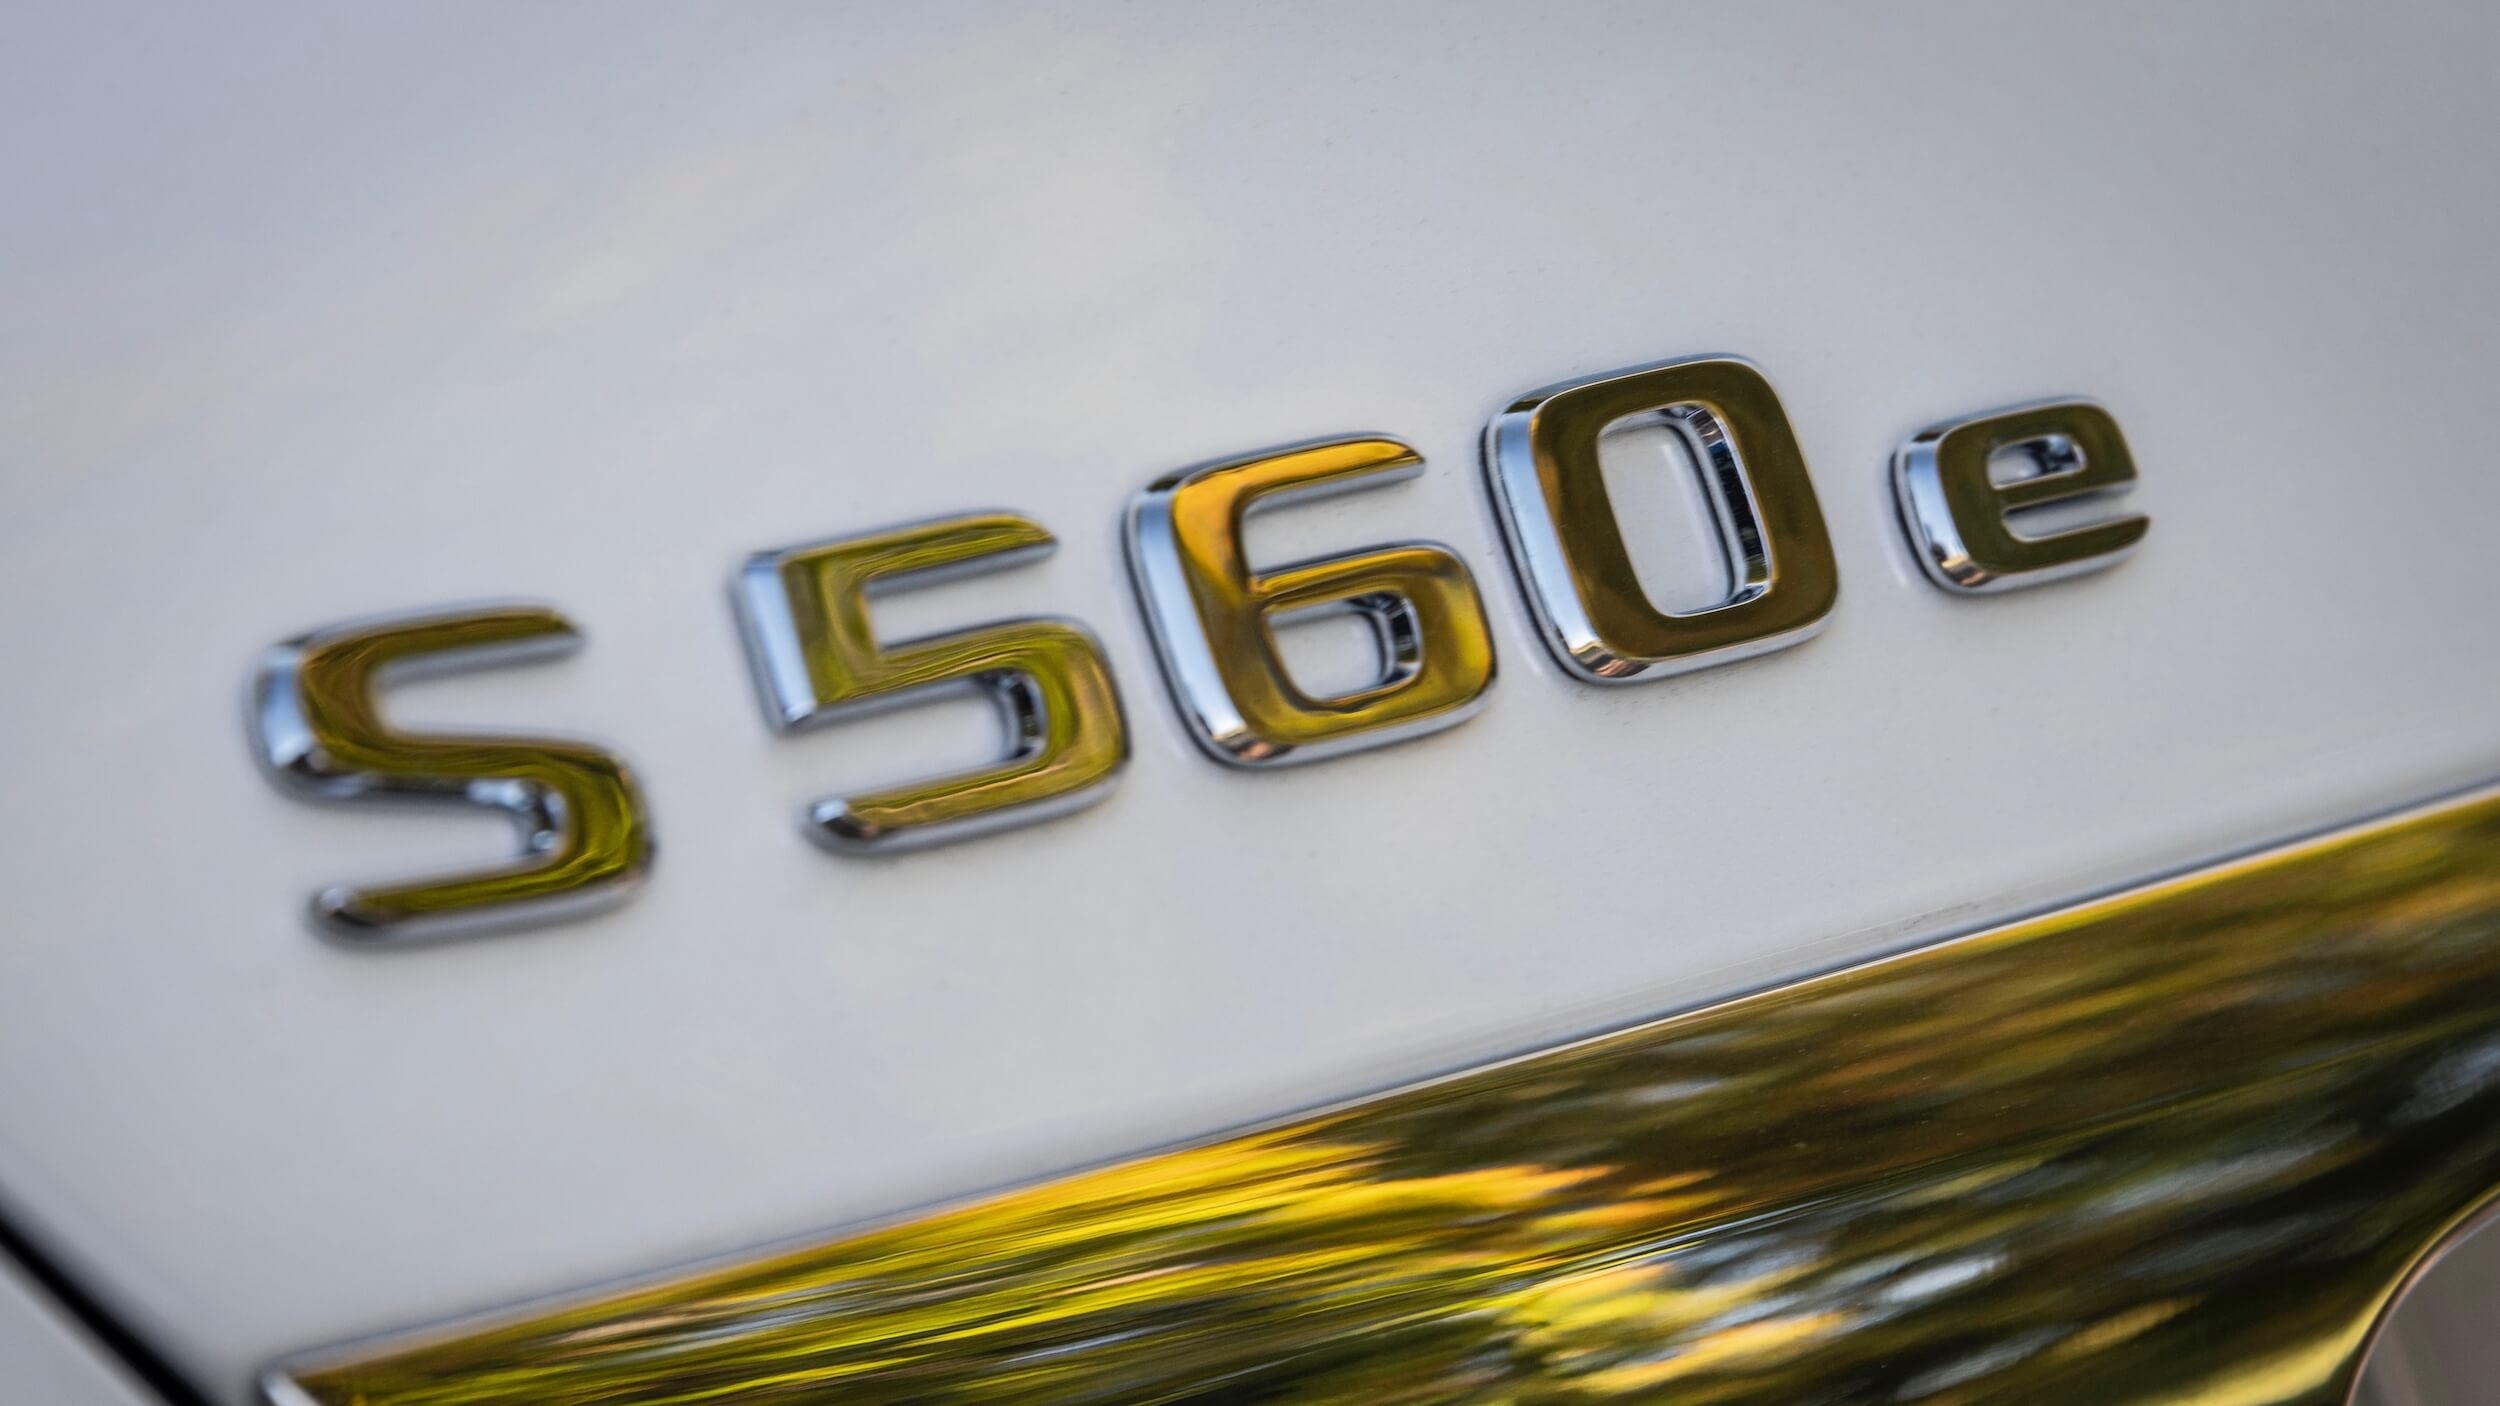 Mercedes S 560e badge